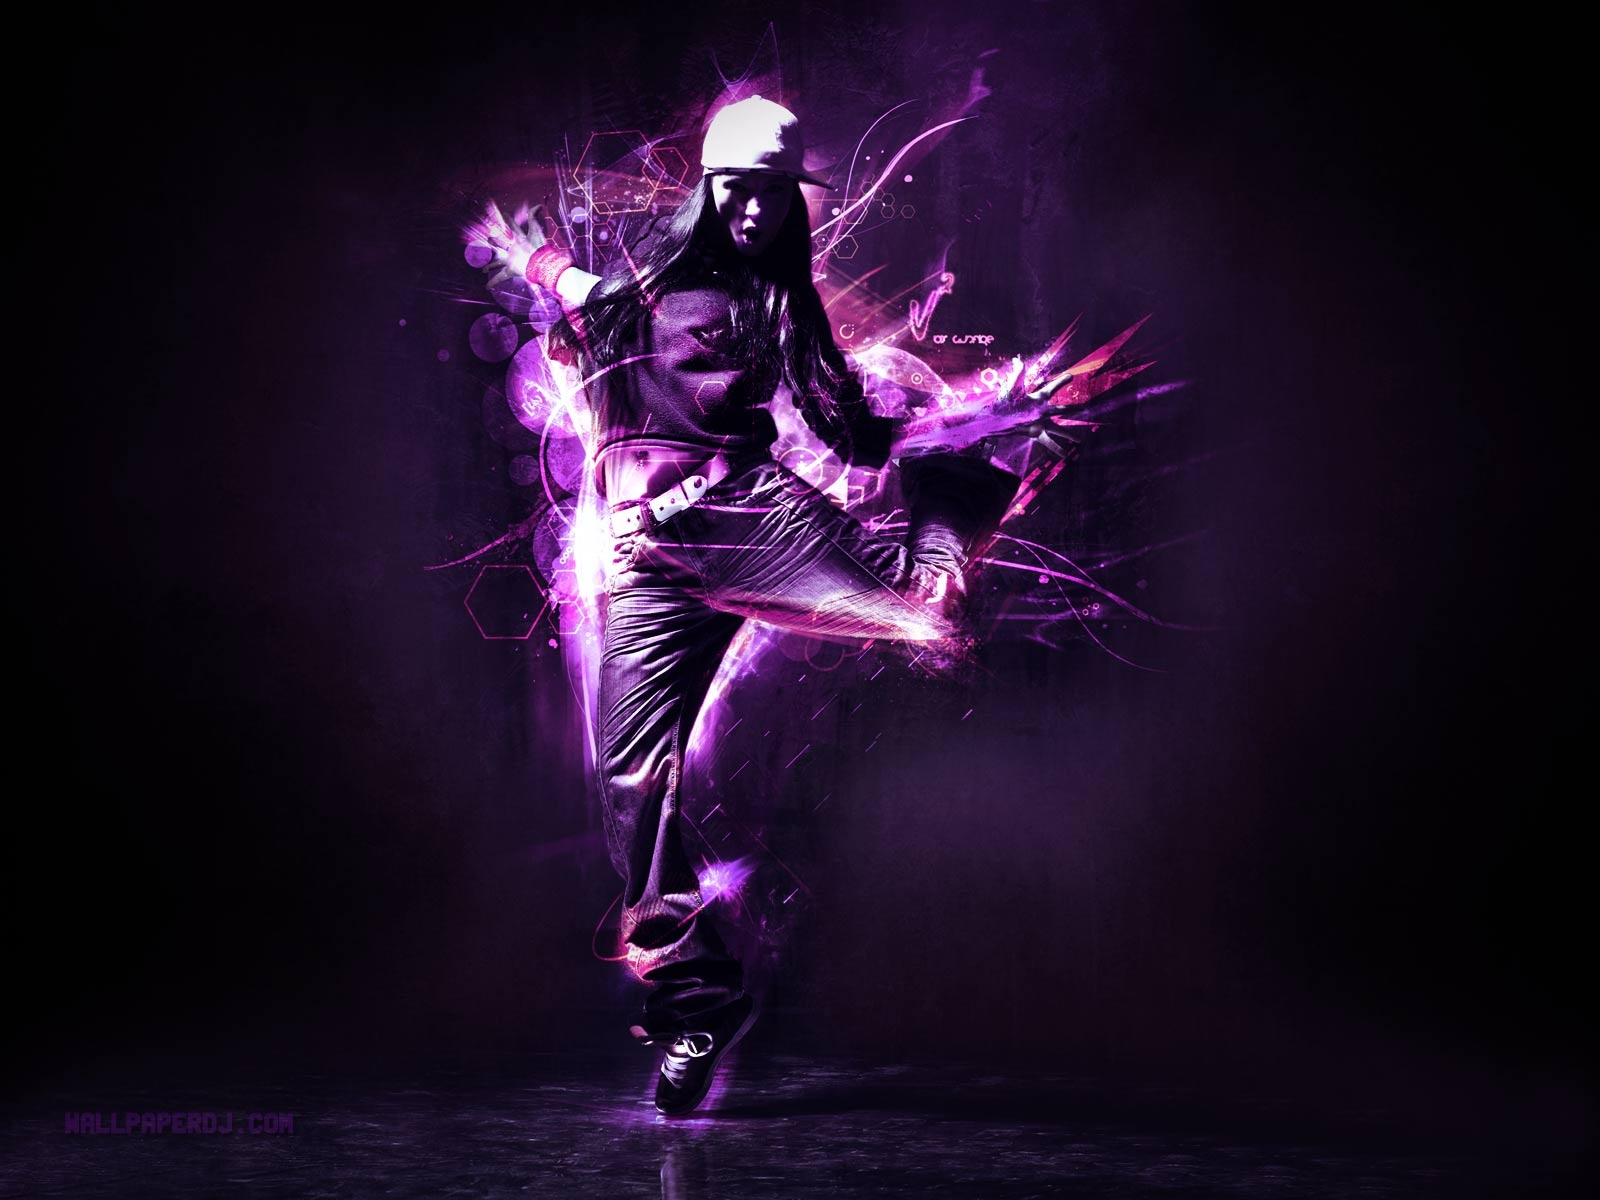 1600x1200 break free wallpaper music and dance wallpapers for 123 get on the dance floor song download